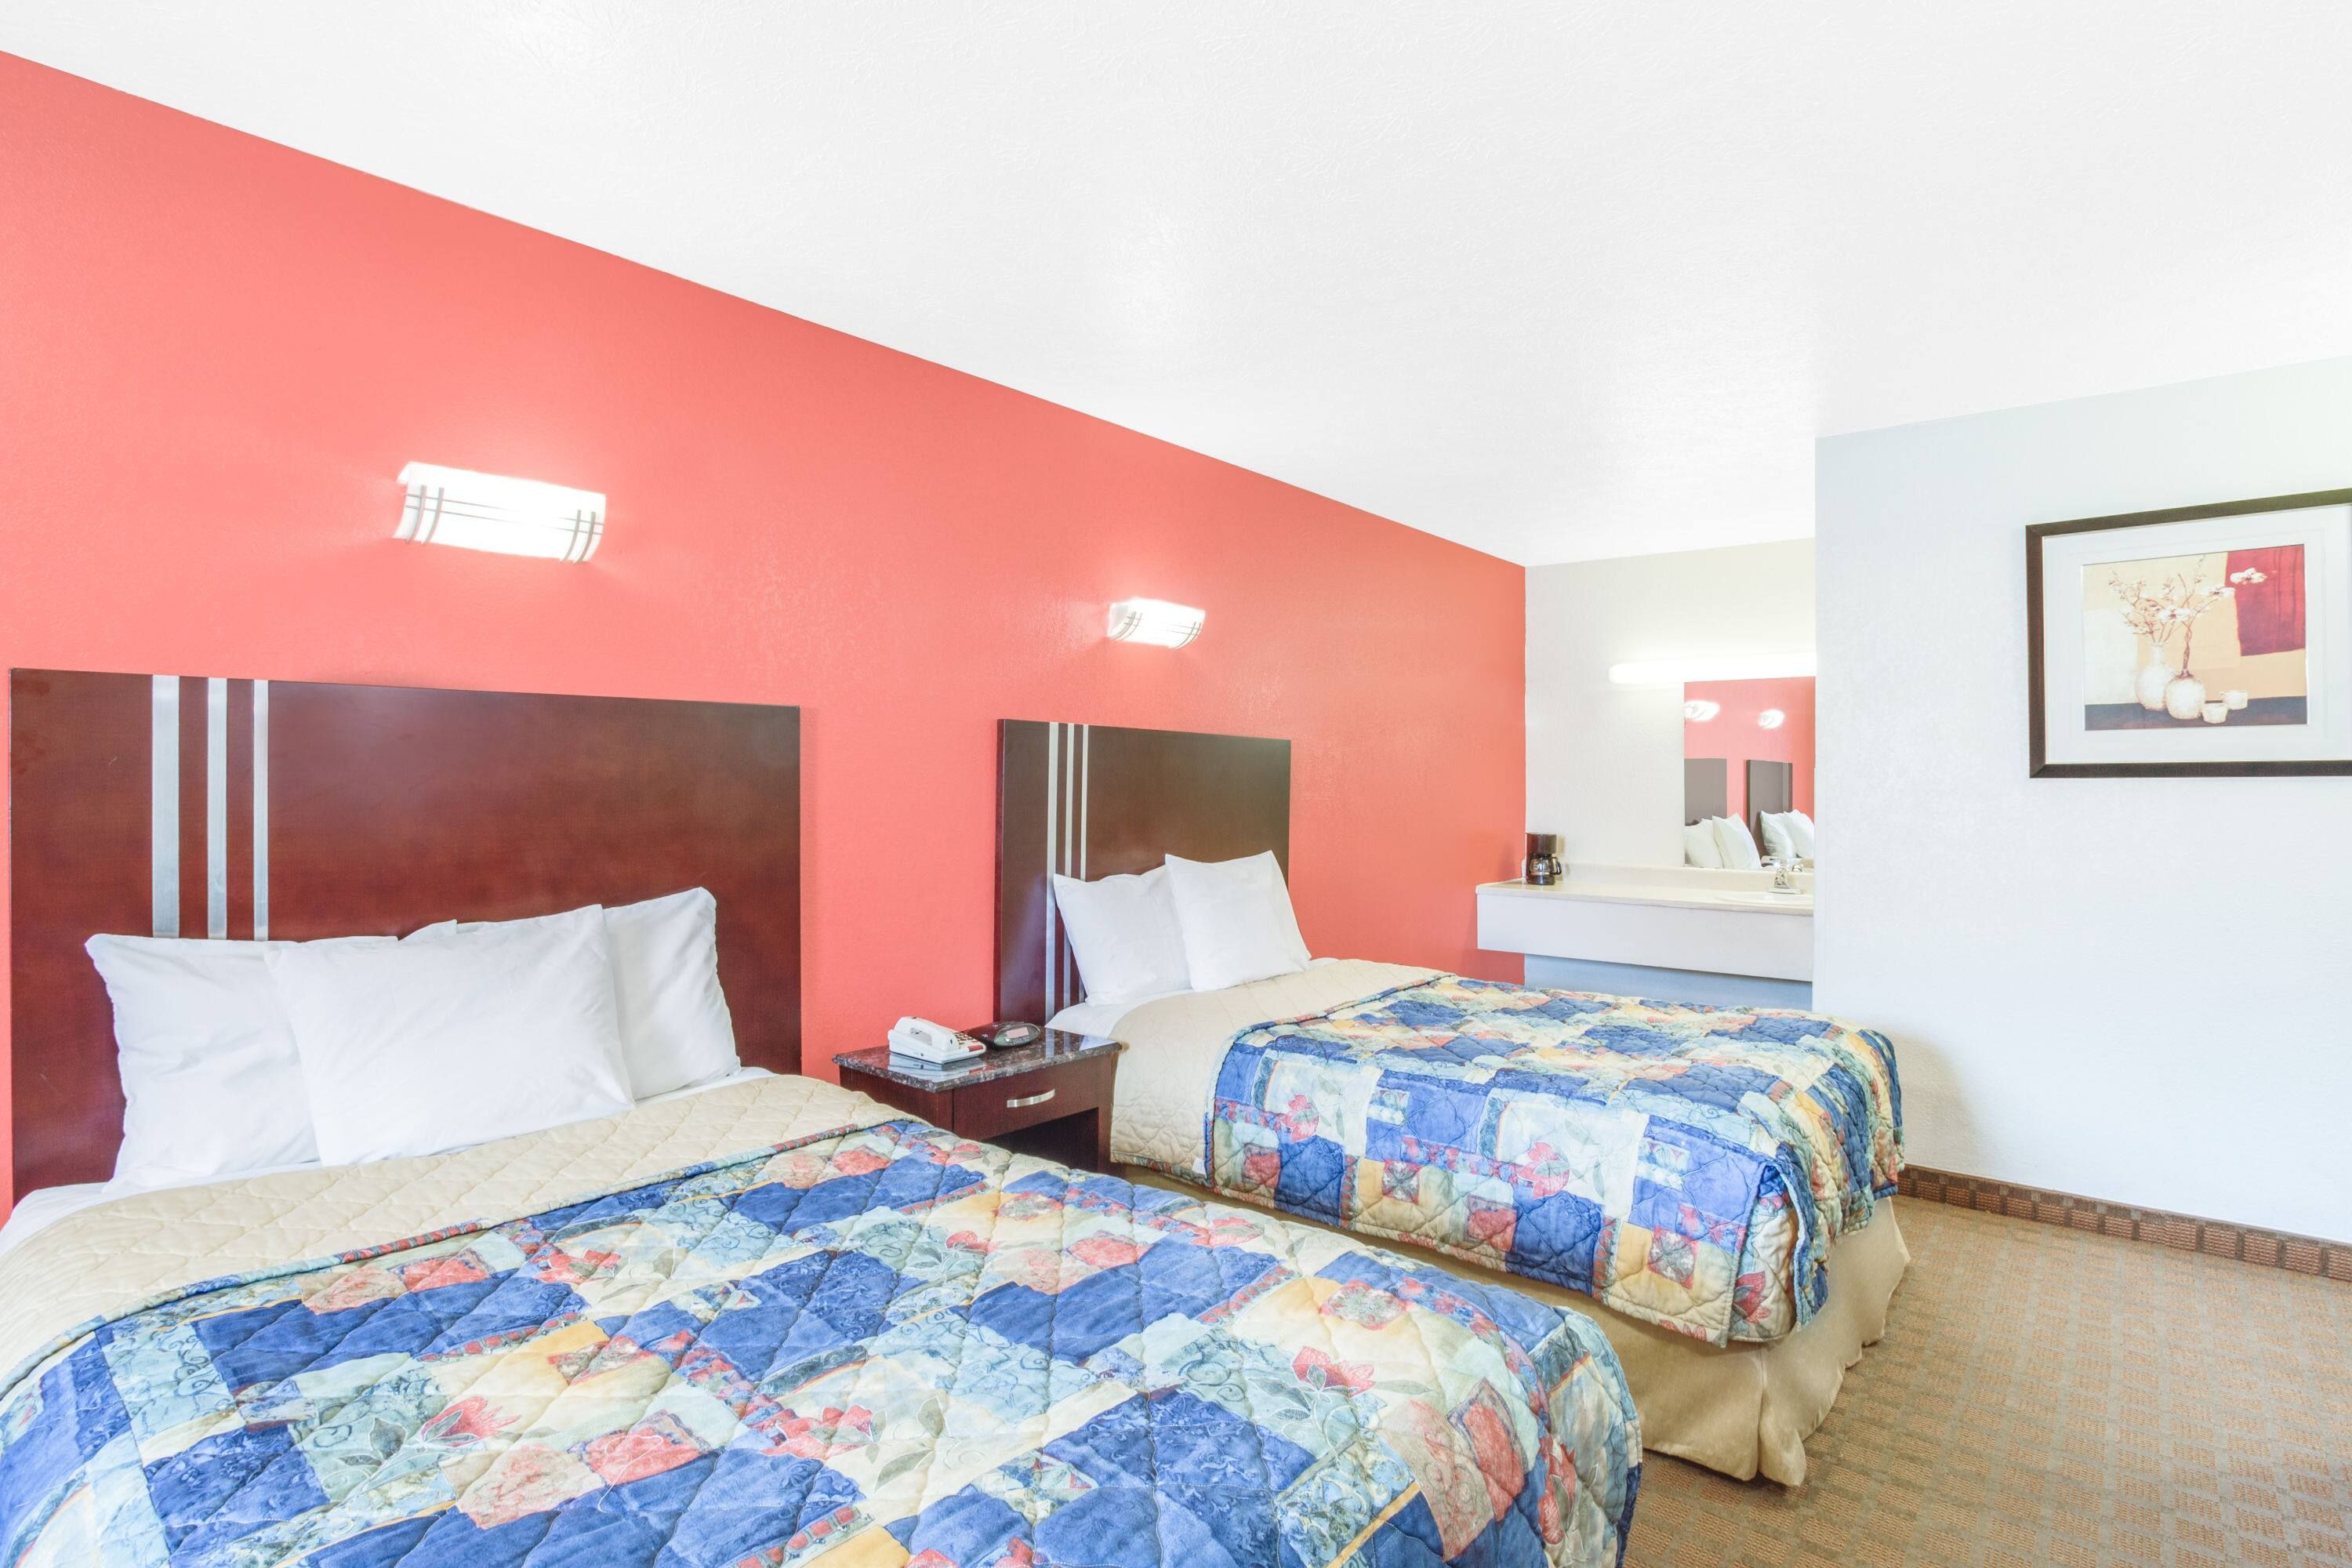 Homey And Comfy Atmosphere Only At Our Travelodgebywyndhamparkersburg With Spacious And Well Maintained Virginia Hotels Parkersburg West Virginia Parkersburg